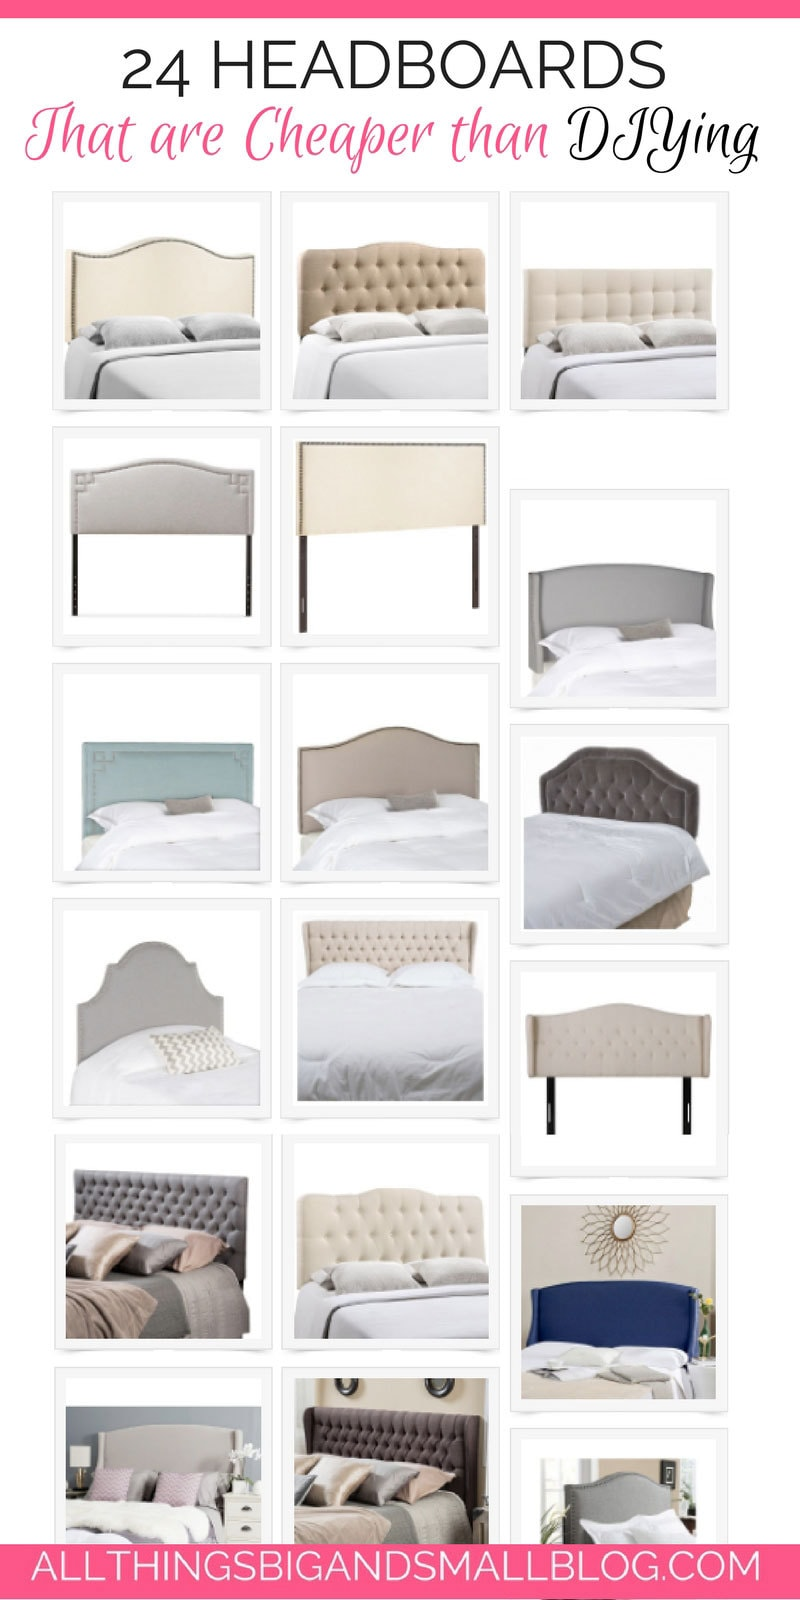 affordable headboards | best headboards that are cheaper to buy than DIY! ALL THINGS BIG AND SMALL